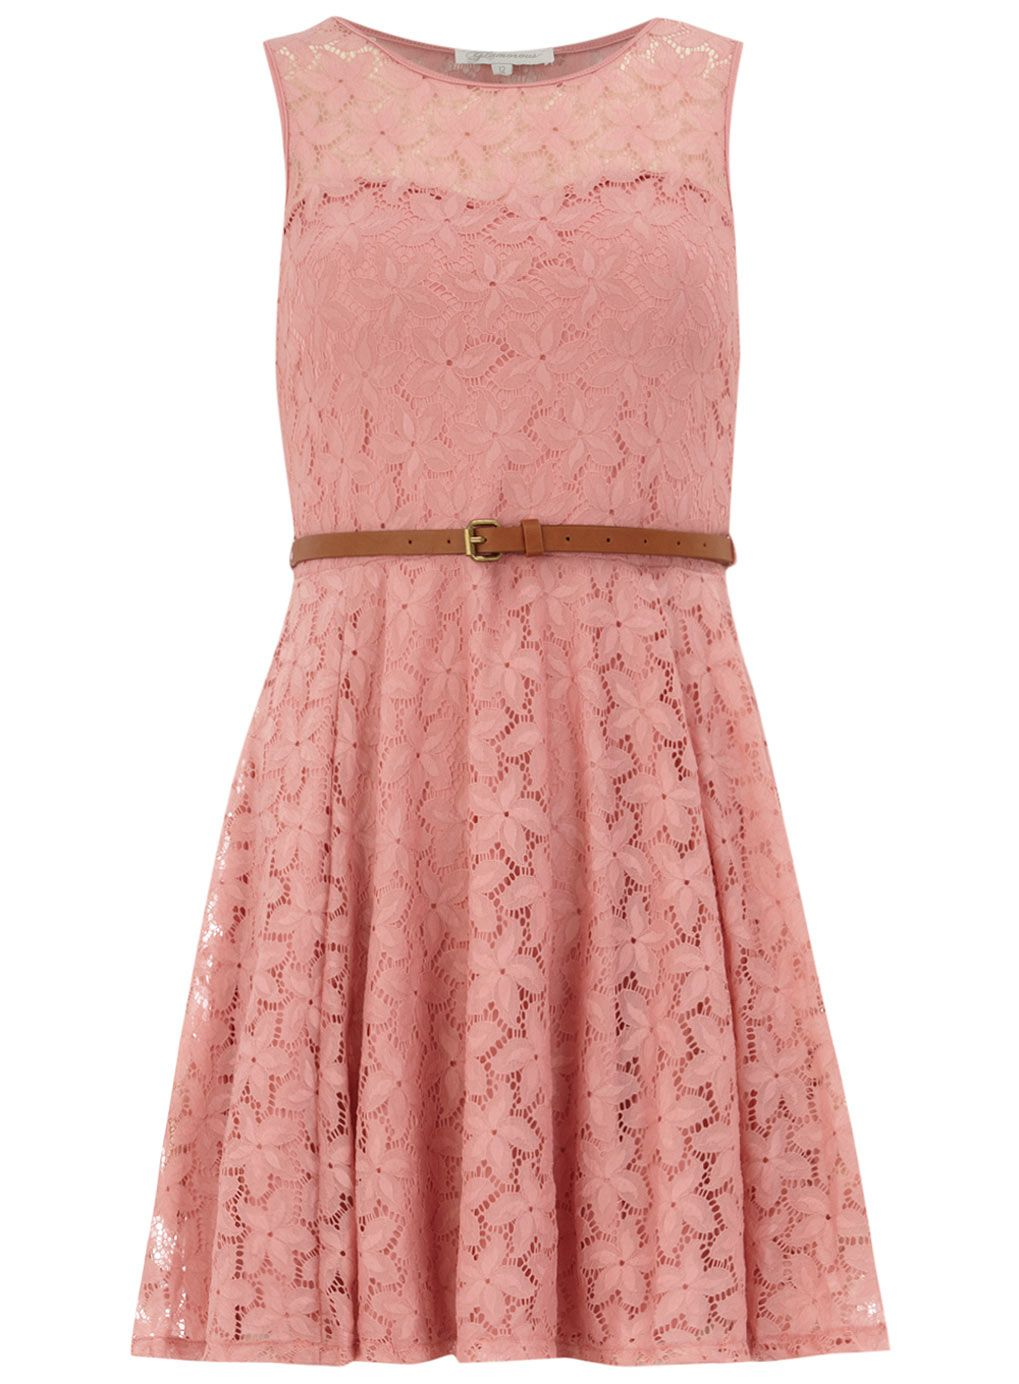 Pink sweetheart lace dress dorothy perkins mode pinterest